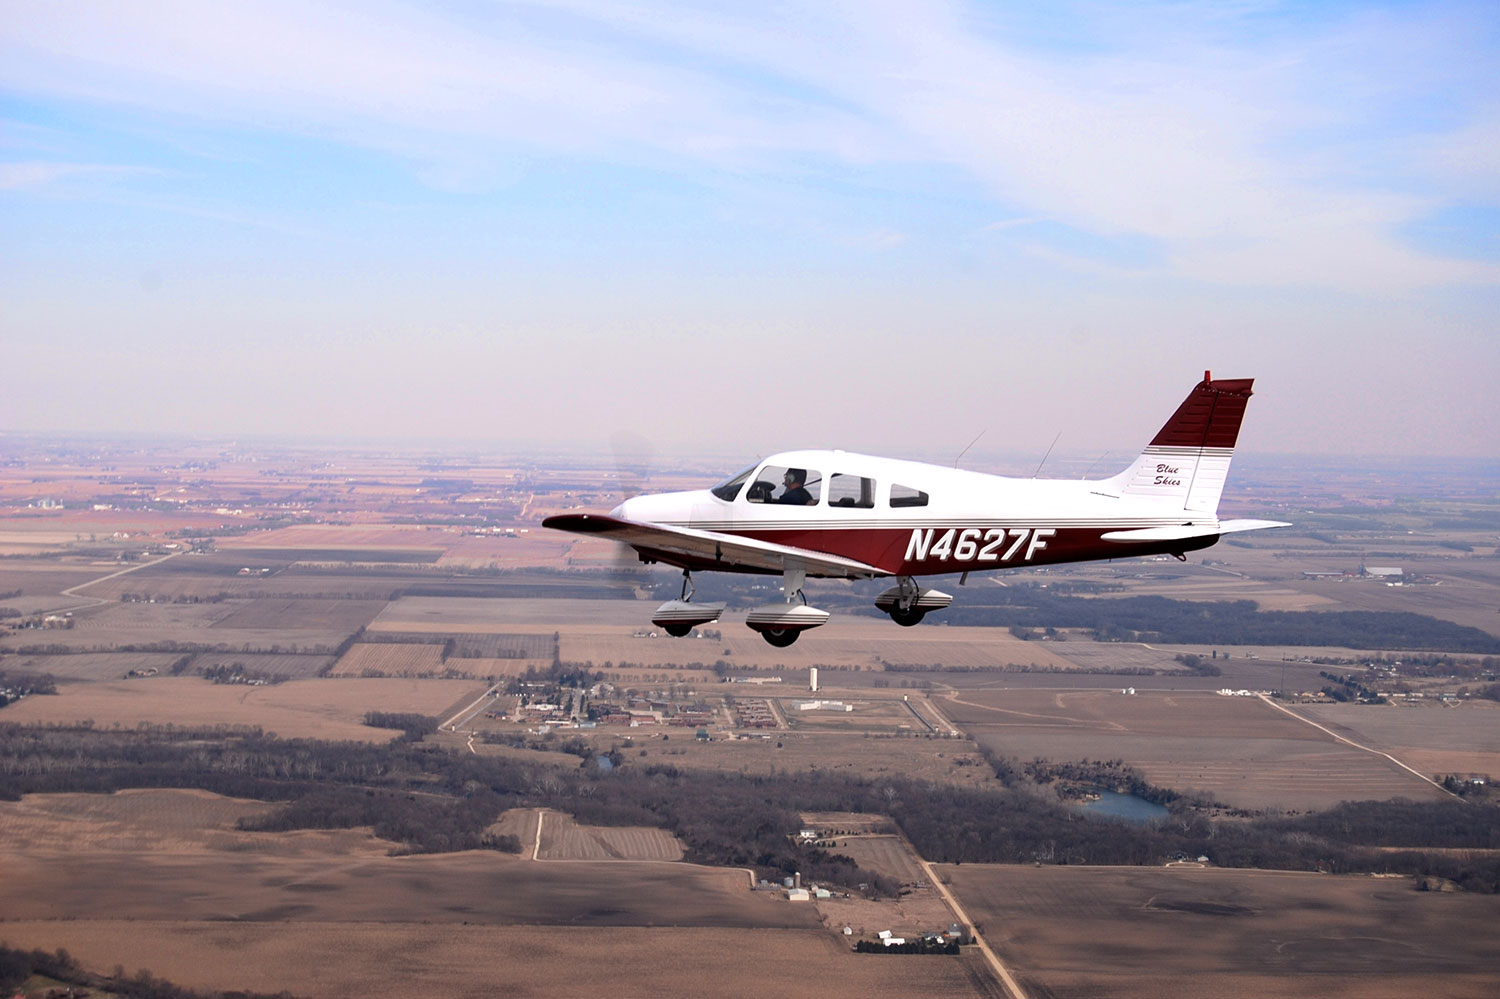 Blue-Skies-Flying-Services-Instructor-Panel-Bluetooth-Piper-Archer-N4627F-Plane